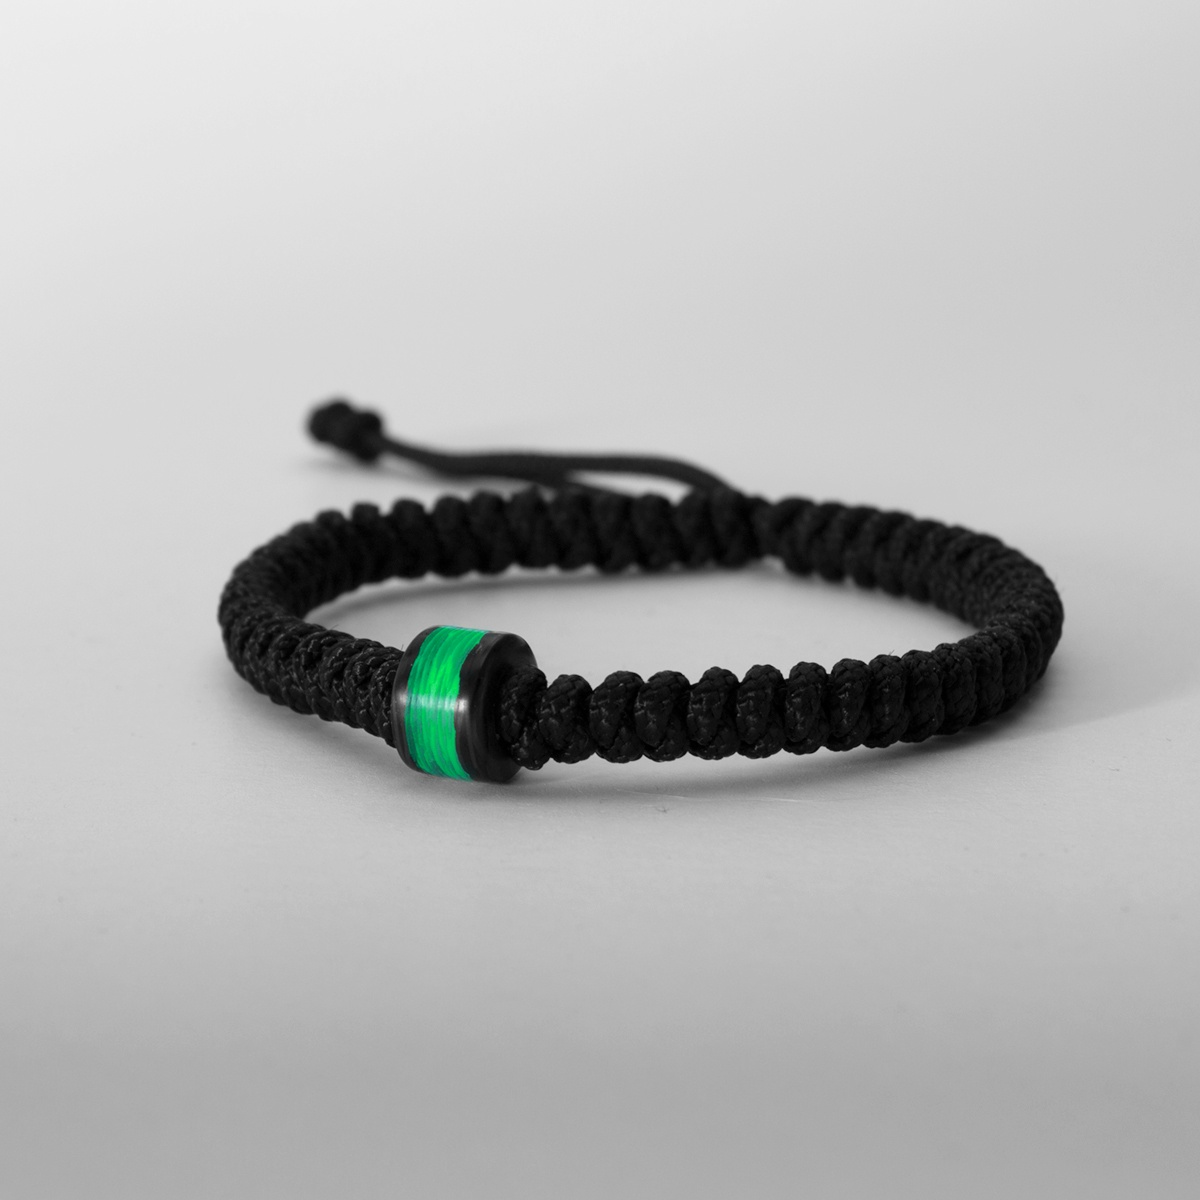 Carbon Fiber Diamontrigue Jewelry: Green GITD Carbon Fiber Bead Bracelet